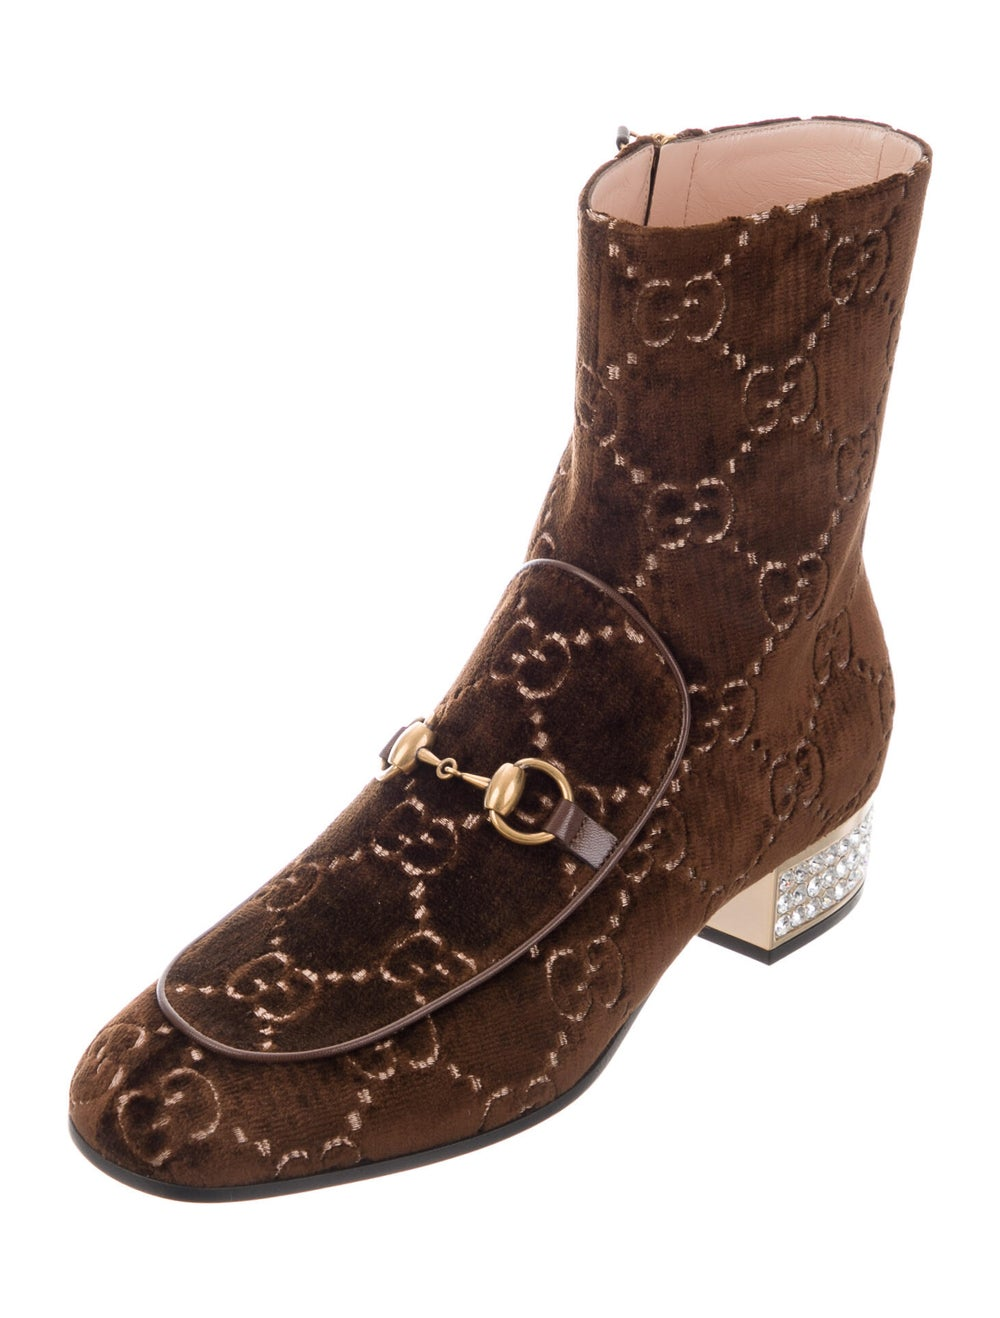 Gucci Horsebit Accent Patterned Boots Brown - image 2